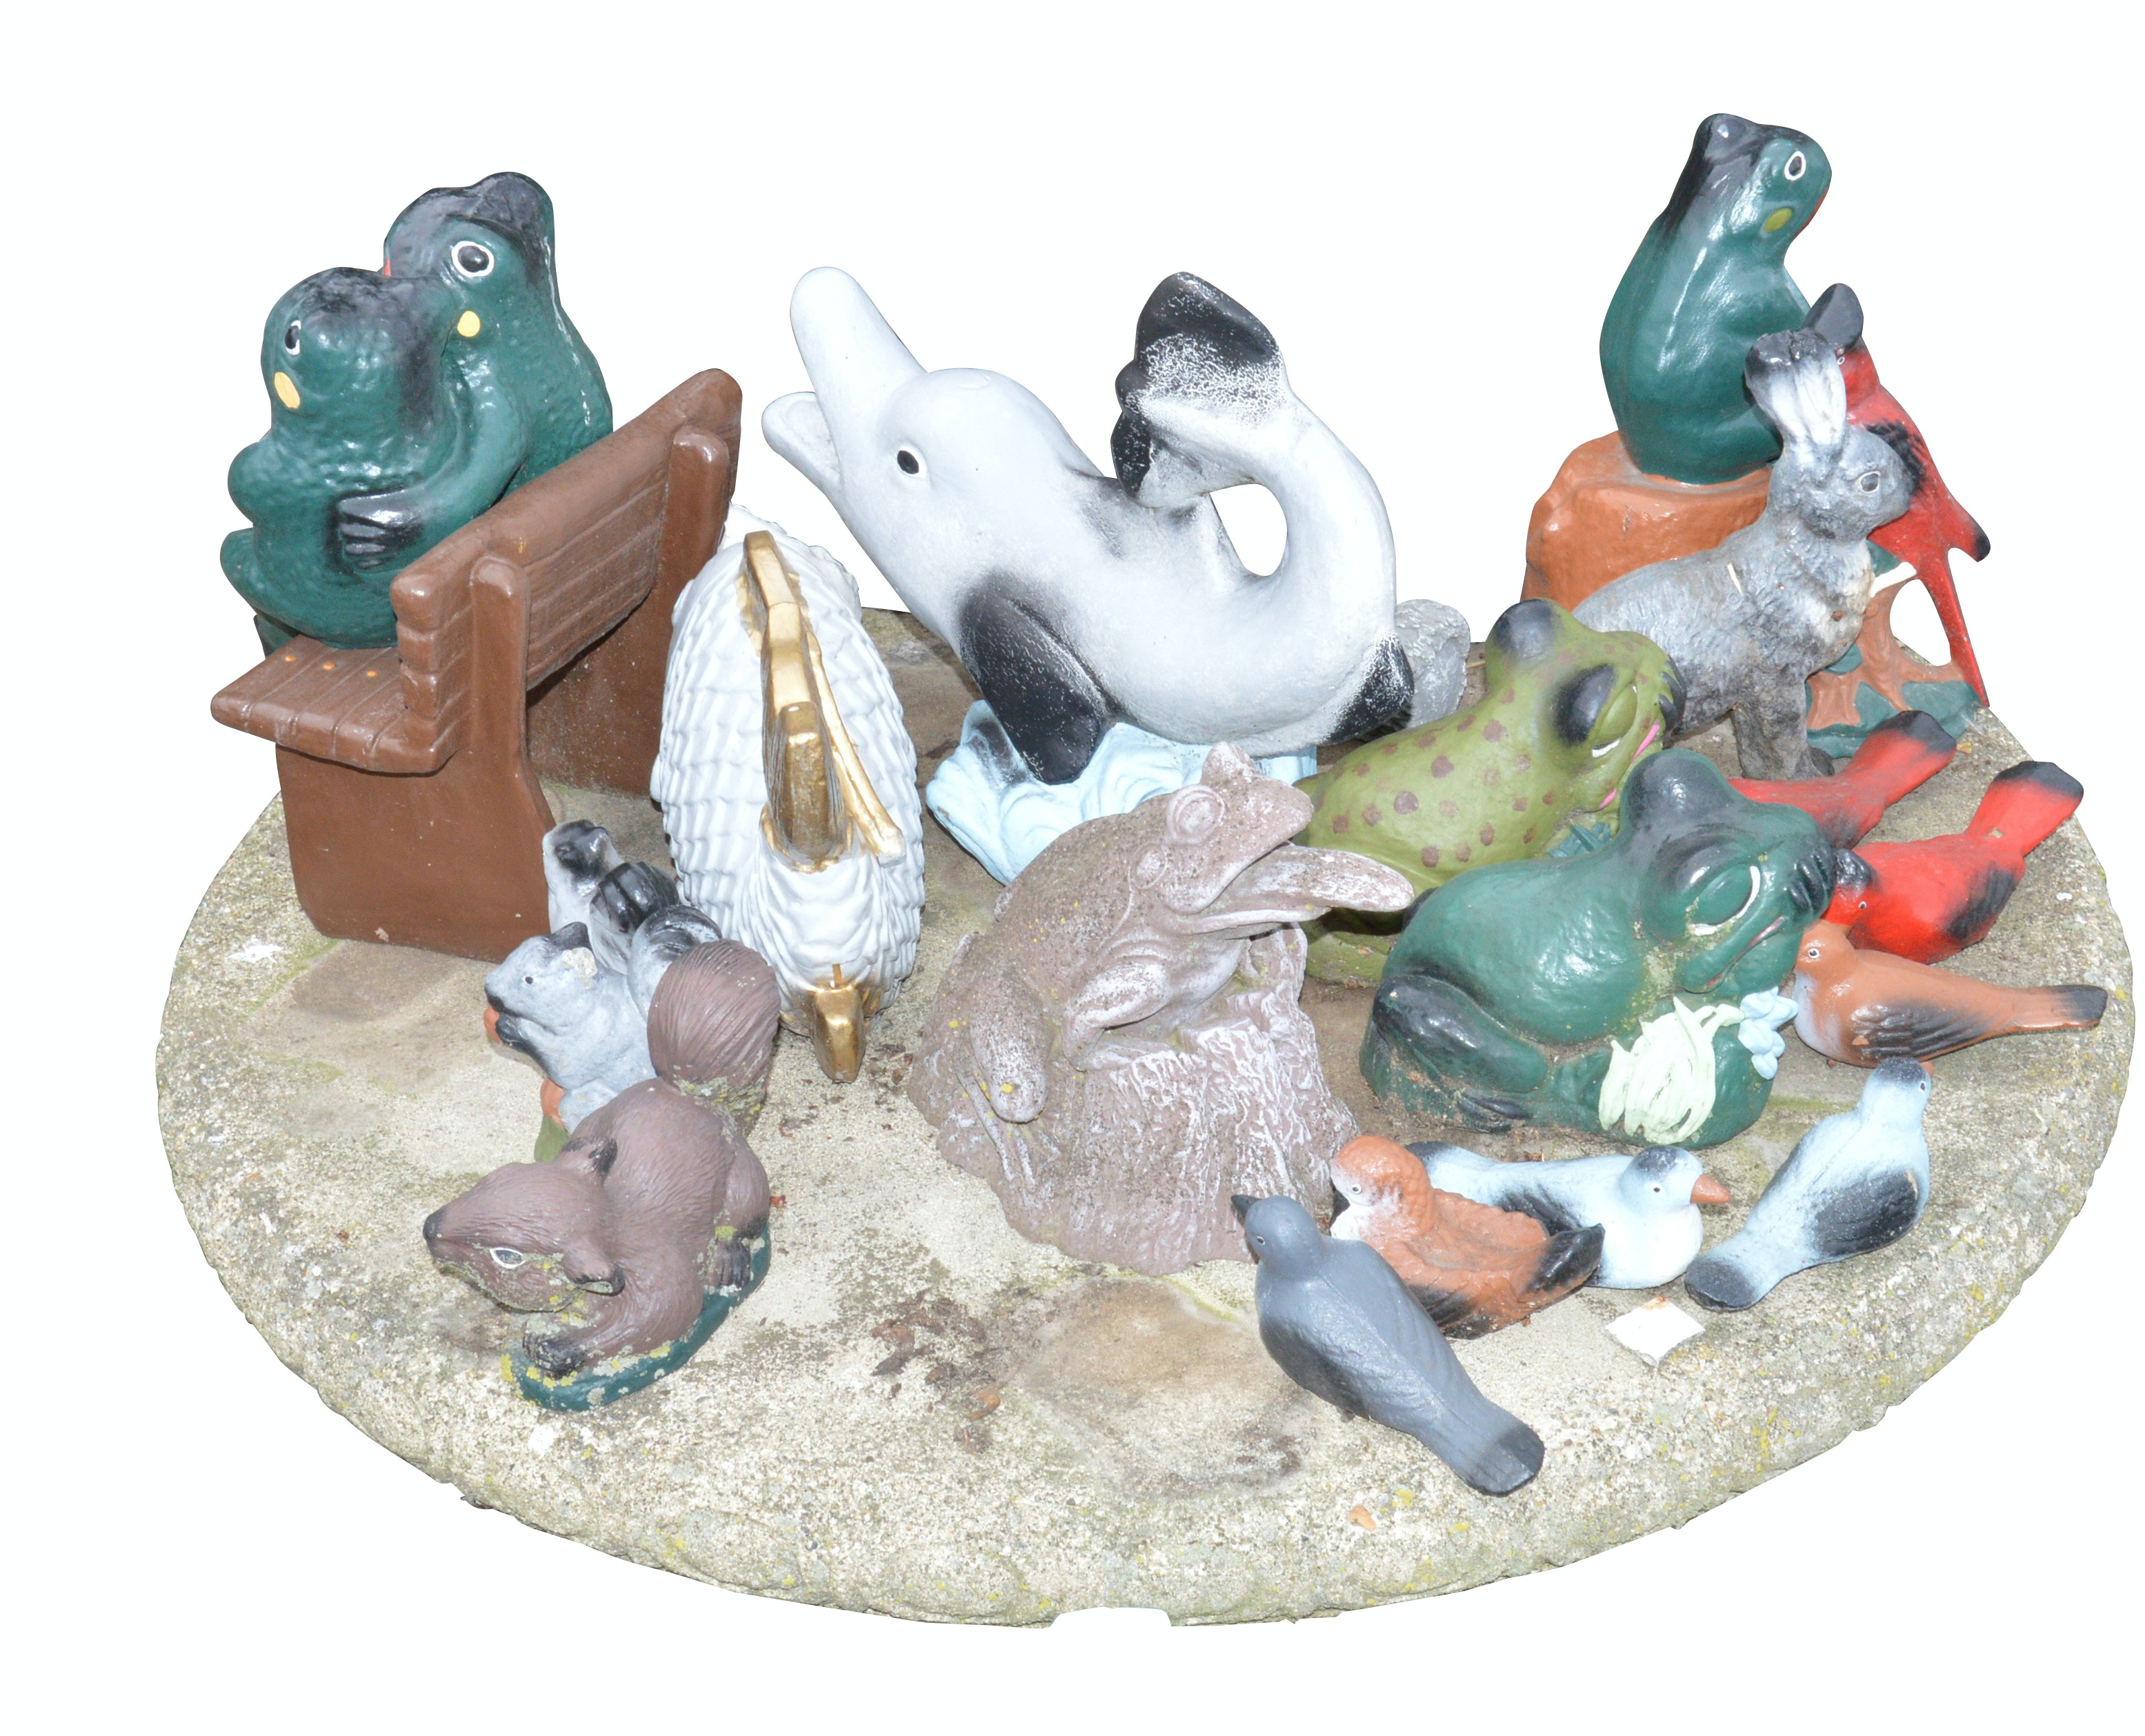 Assorted Stoneware Animal Statues with Concrete Table